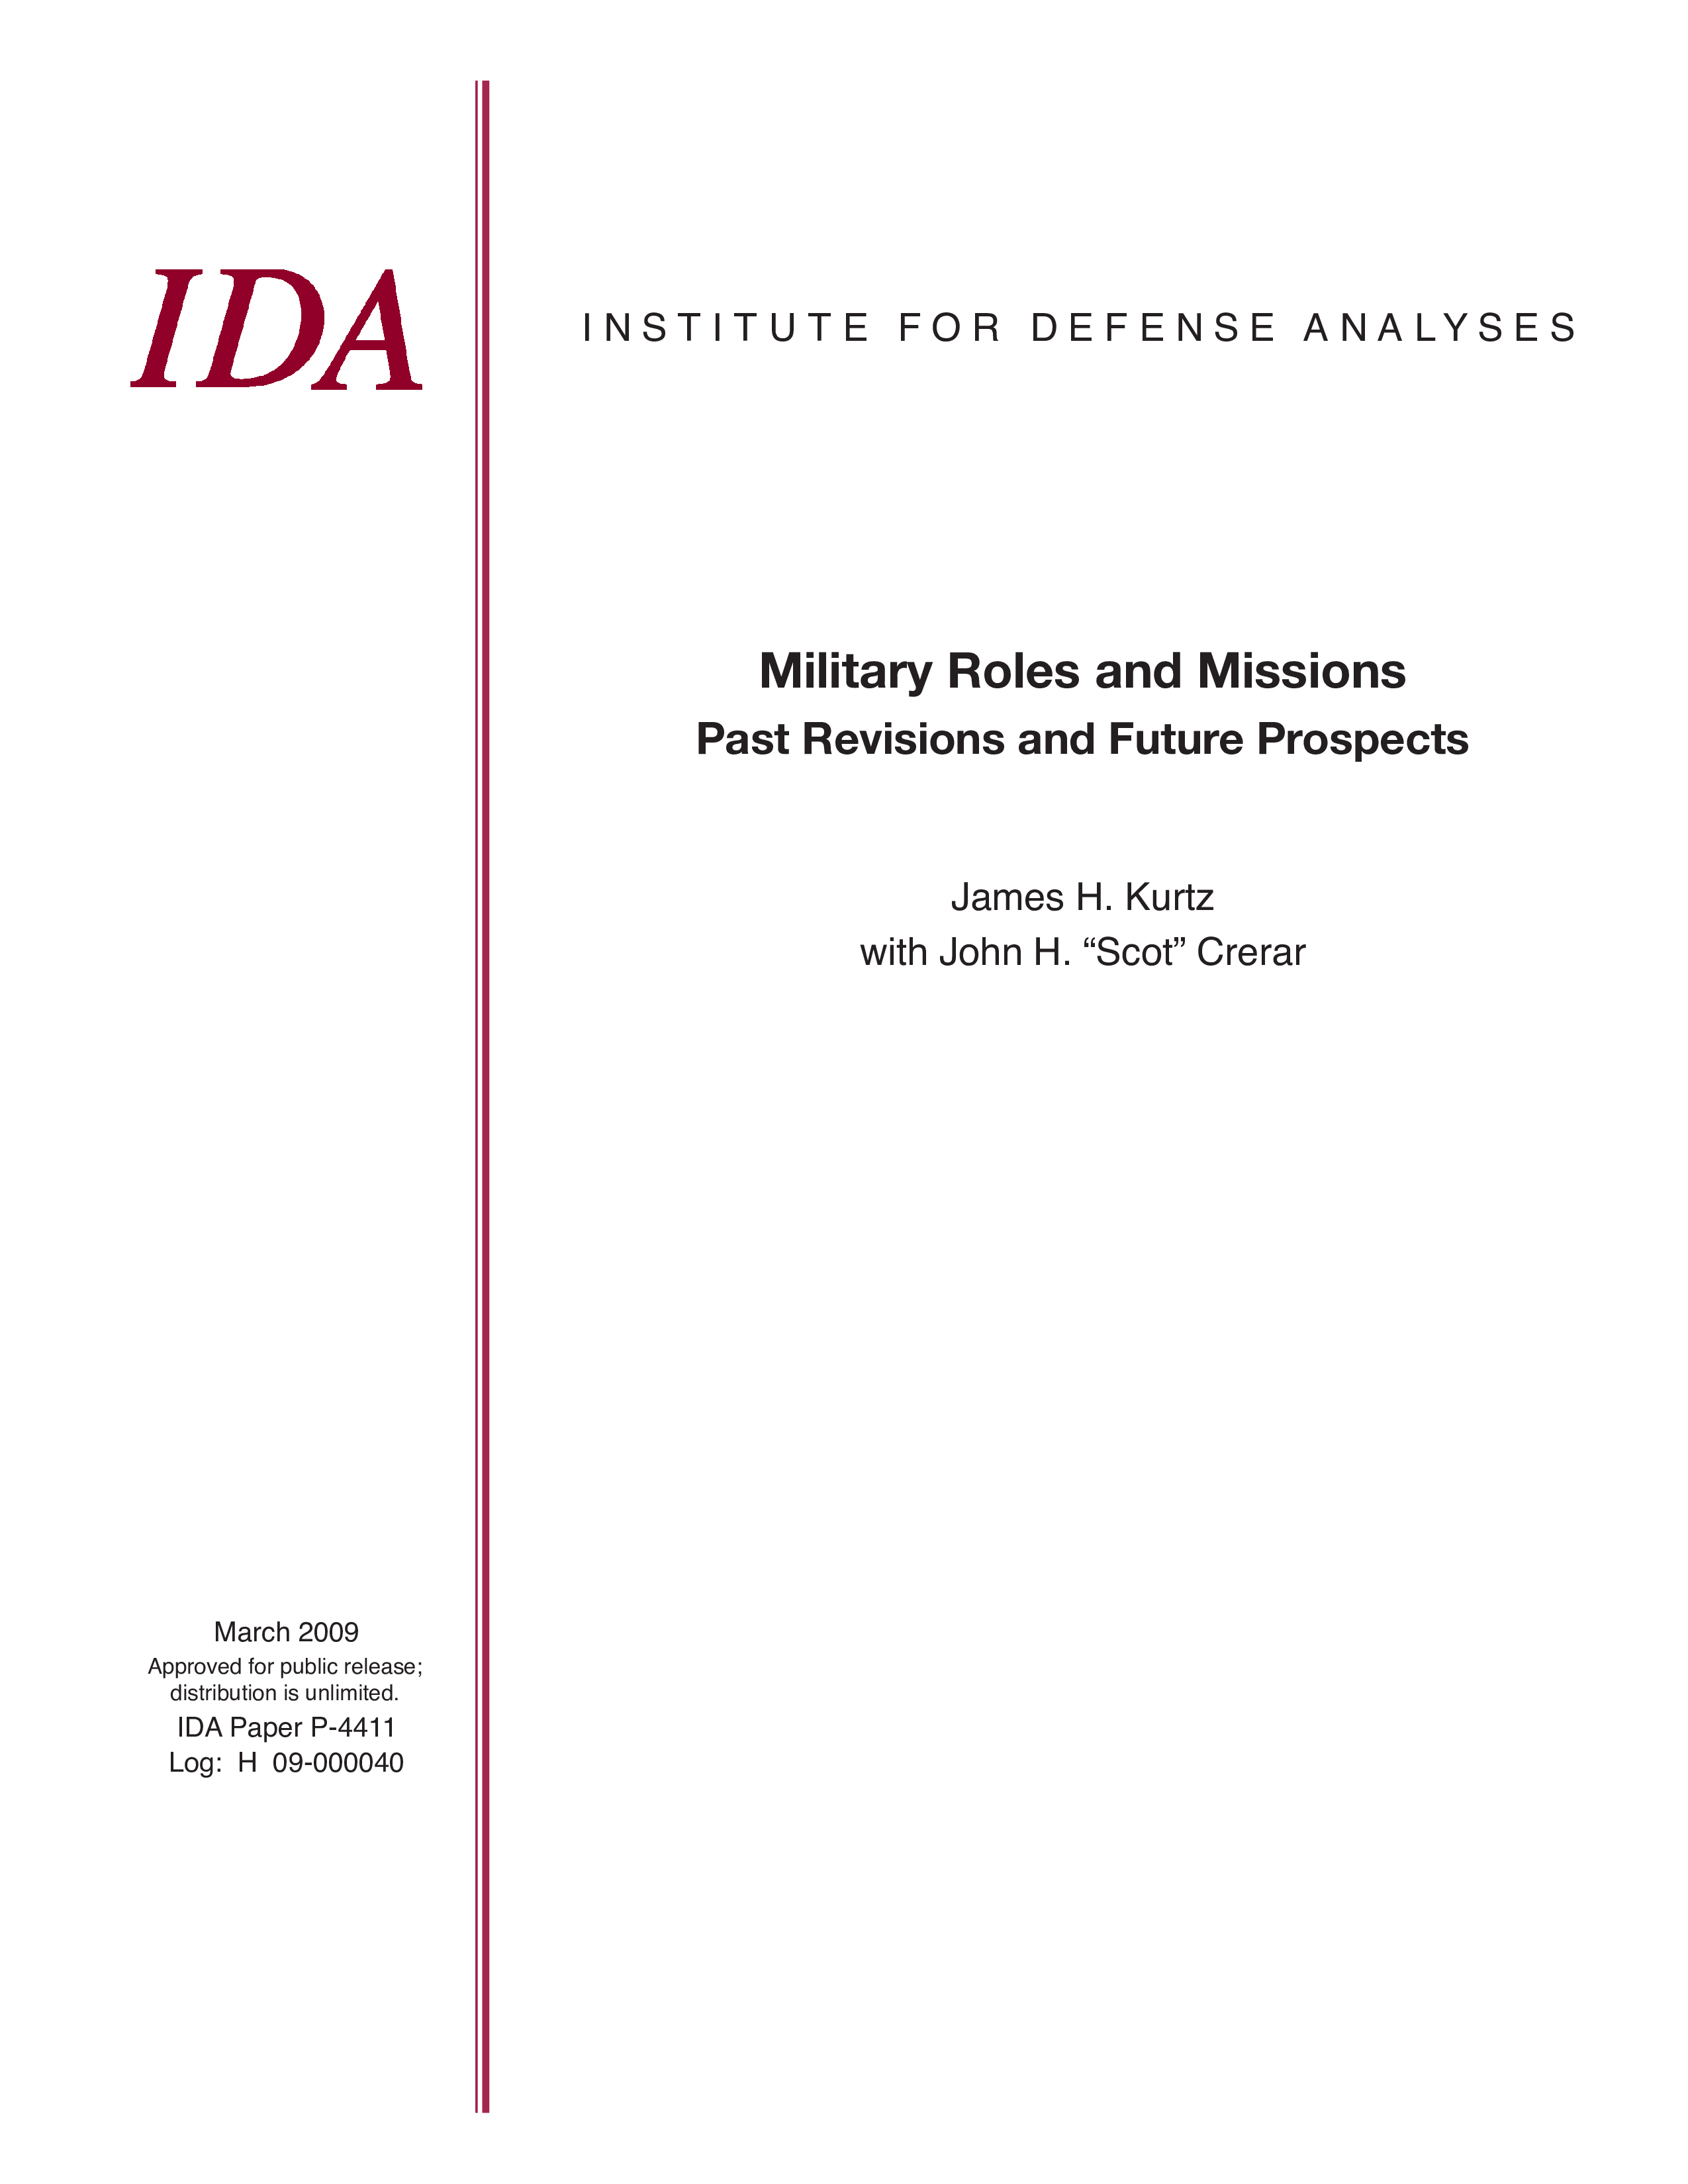 Military Roles and Missions Past Revisions and Future Prospects